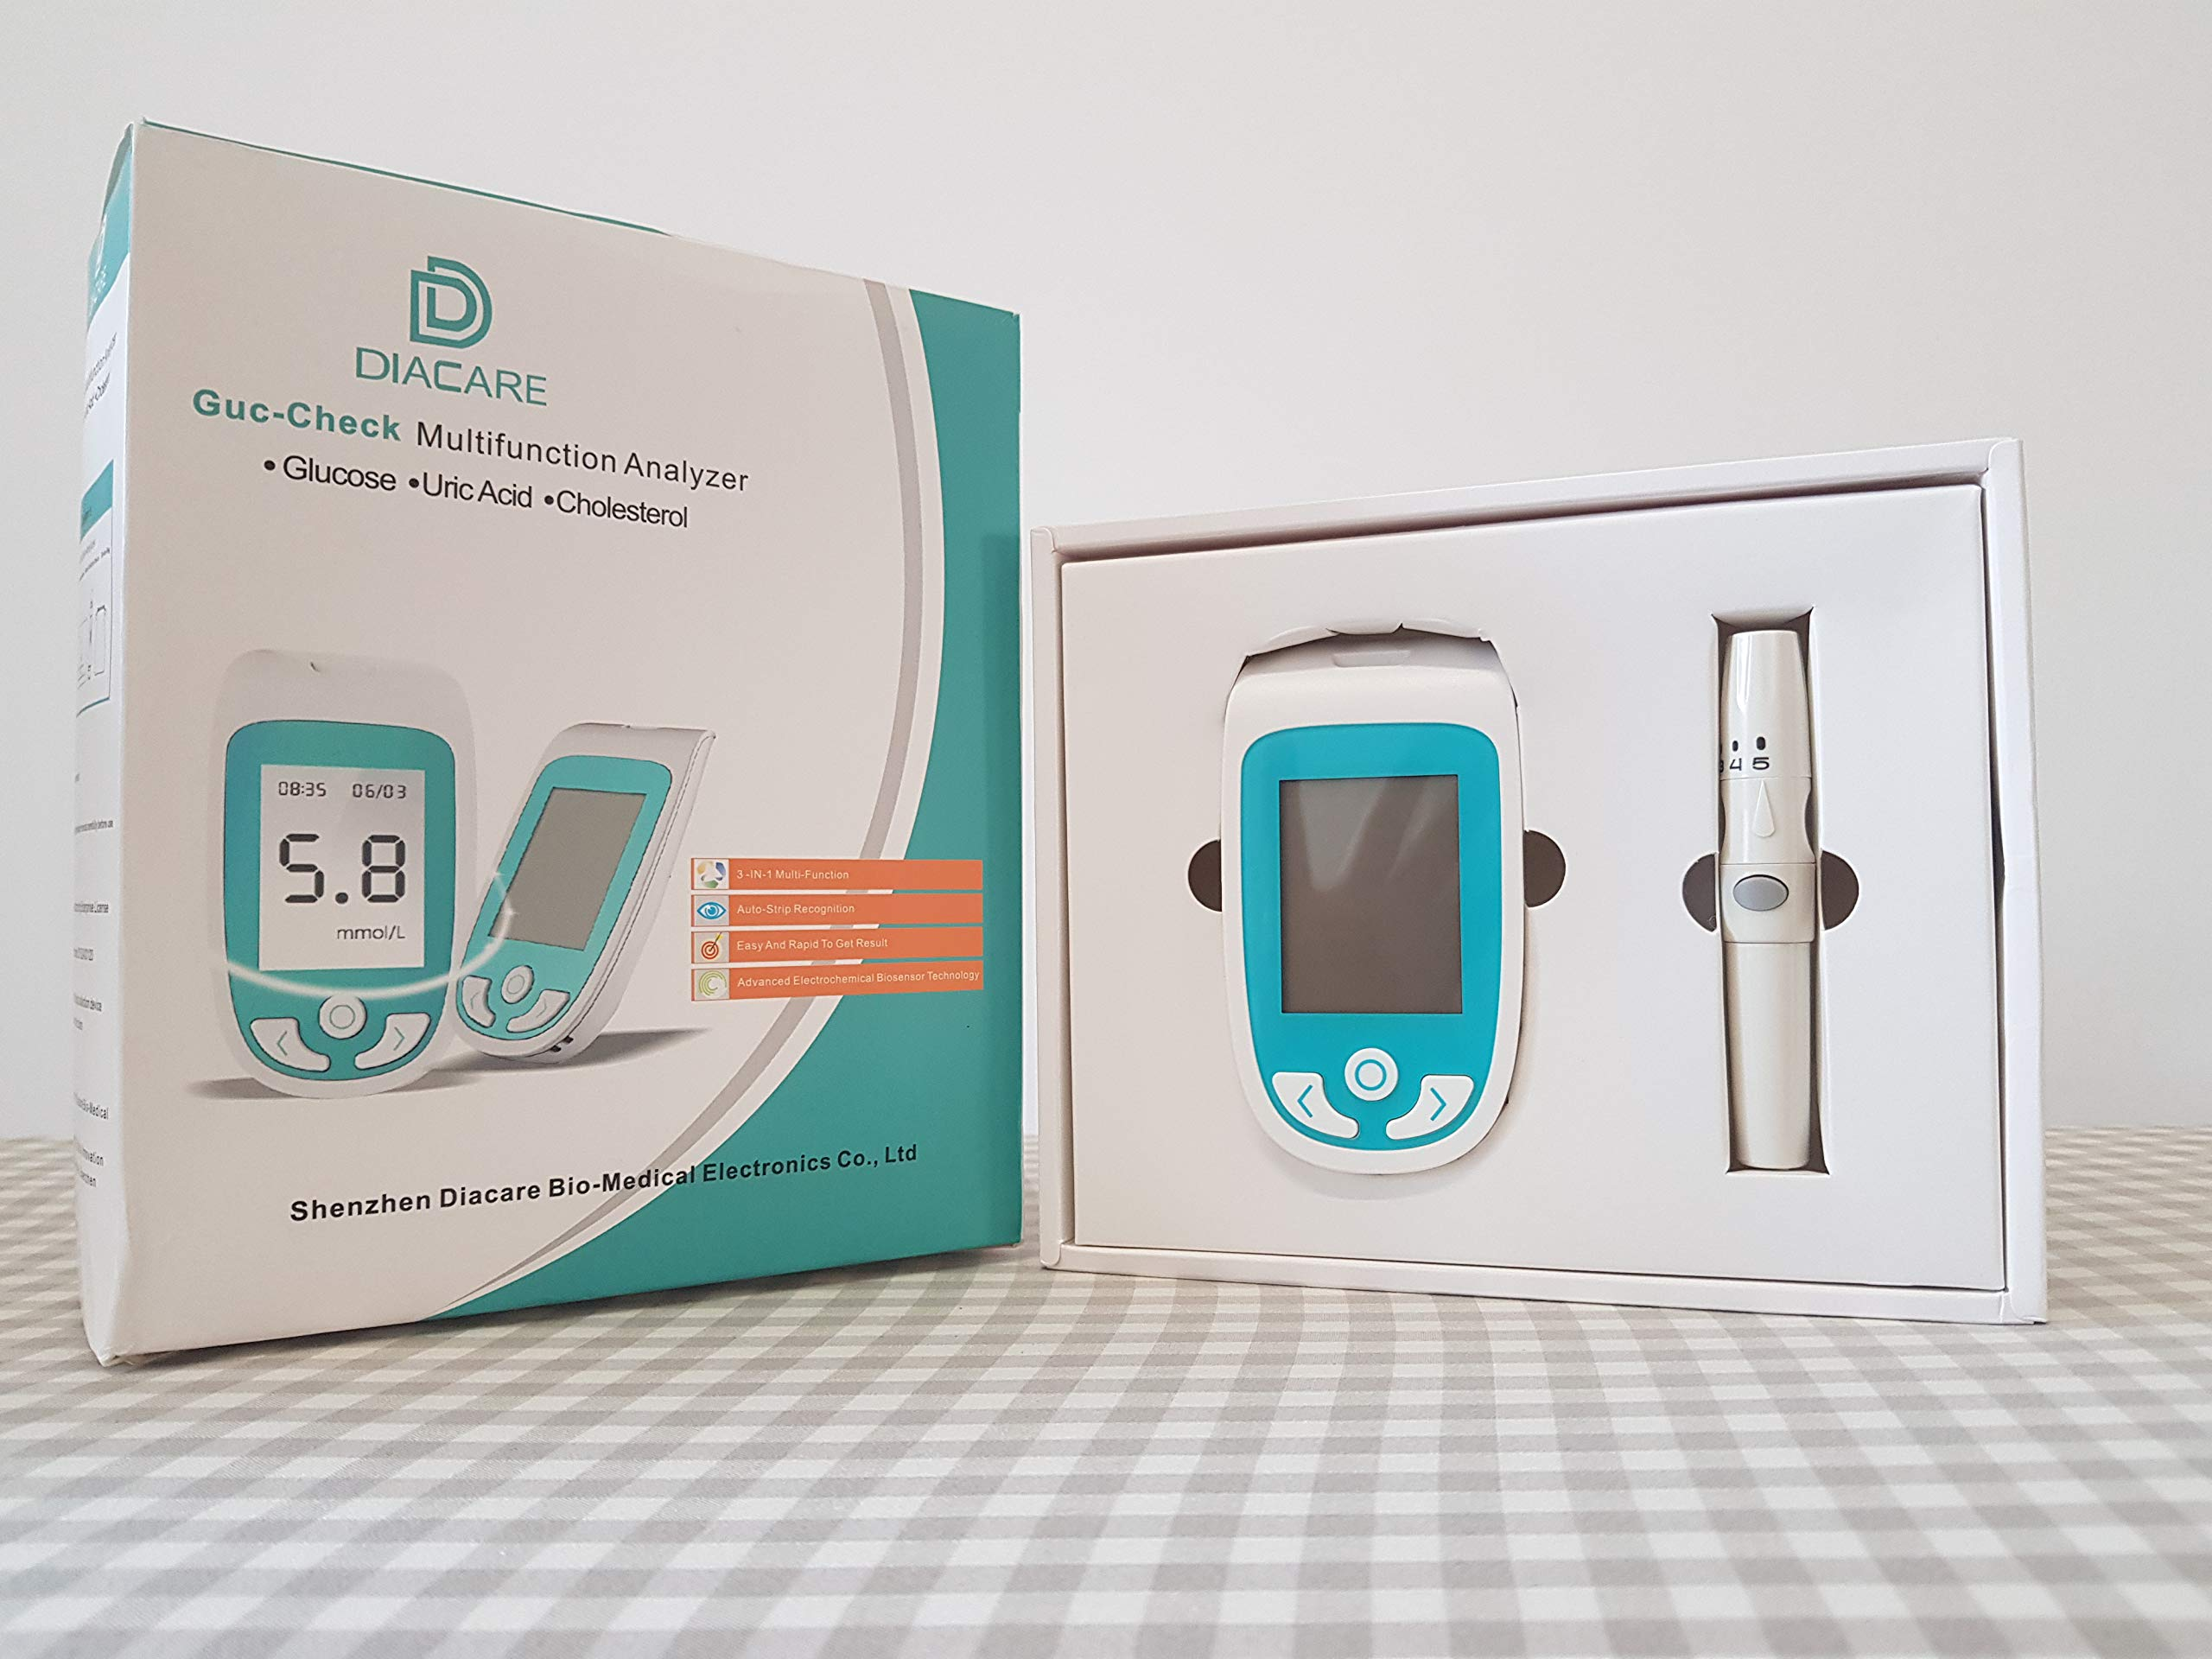 DIACARE GUC-Check Multi-Monitoring System Total Cholesterol, Blood Glucose, Uric Acid 3-in-1 Meter